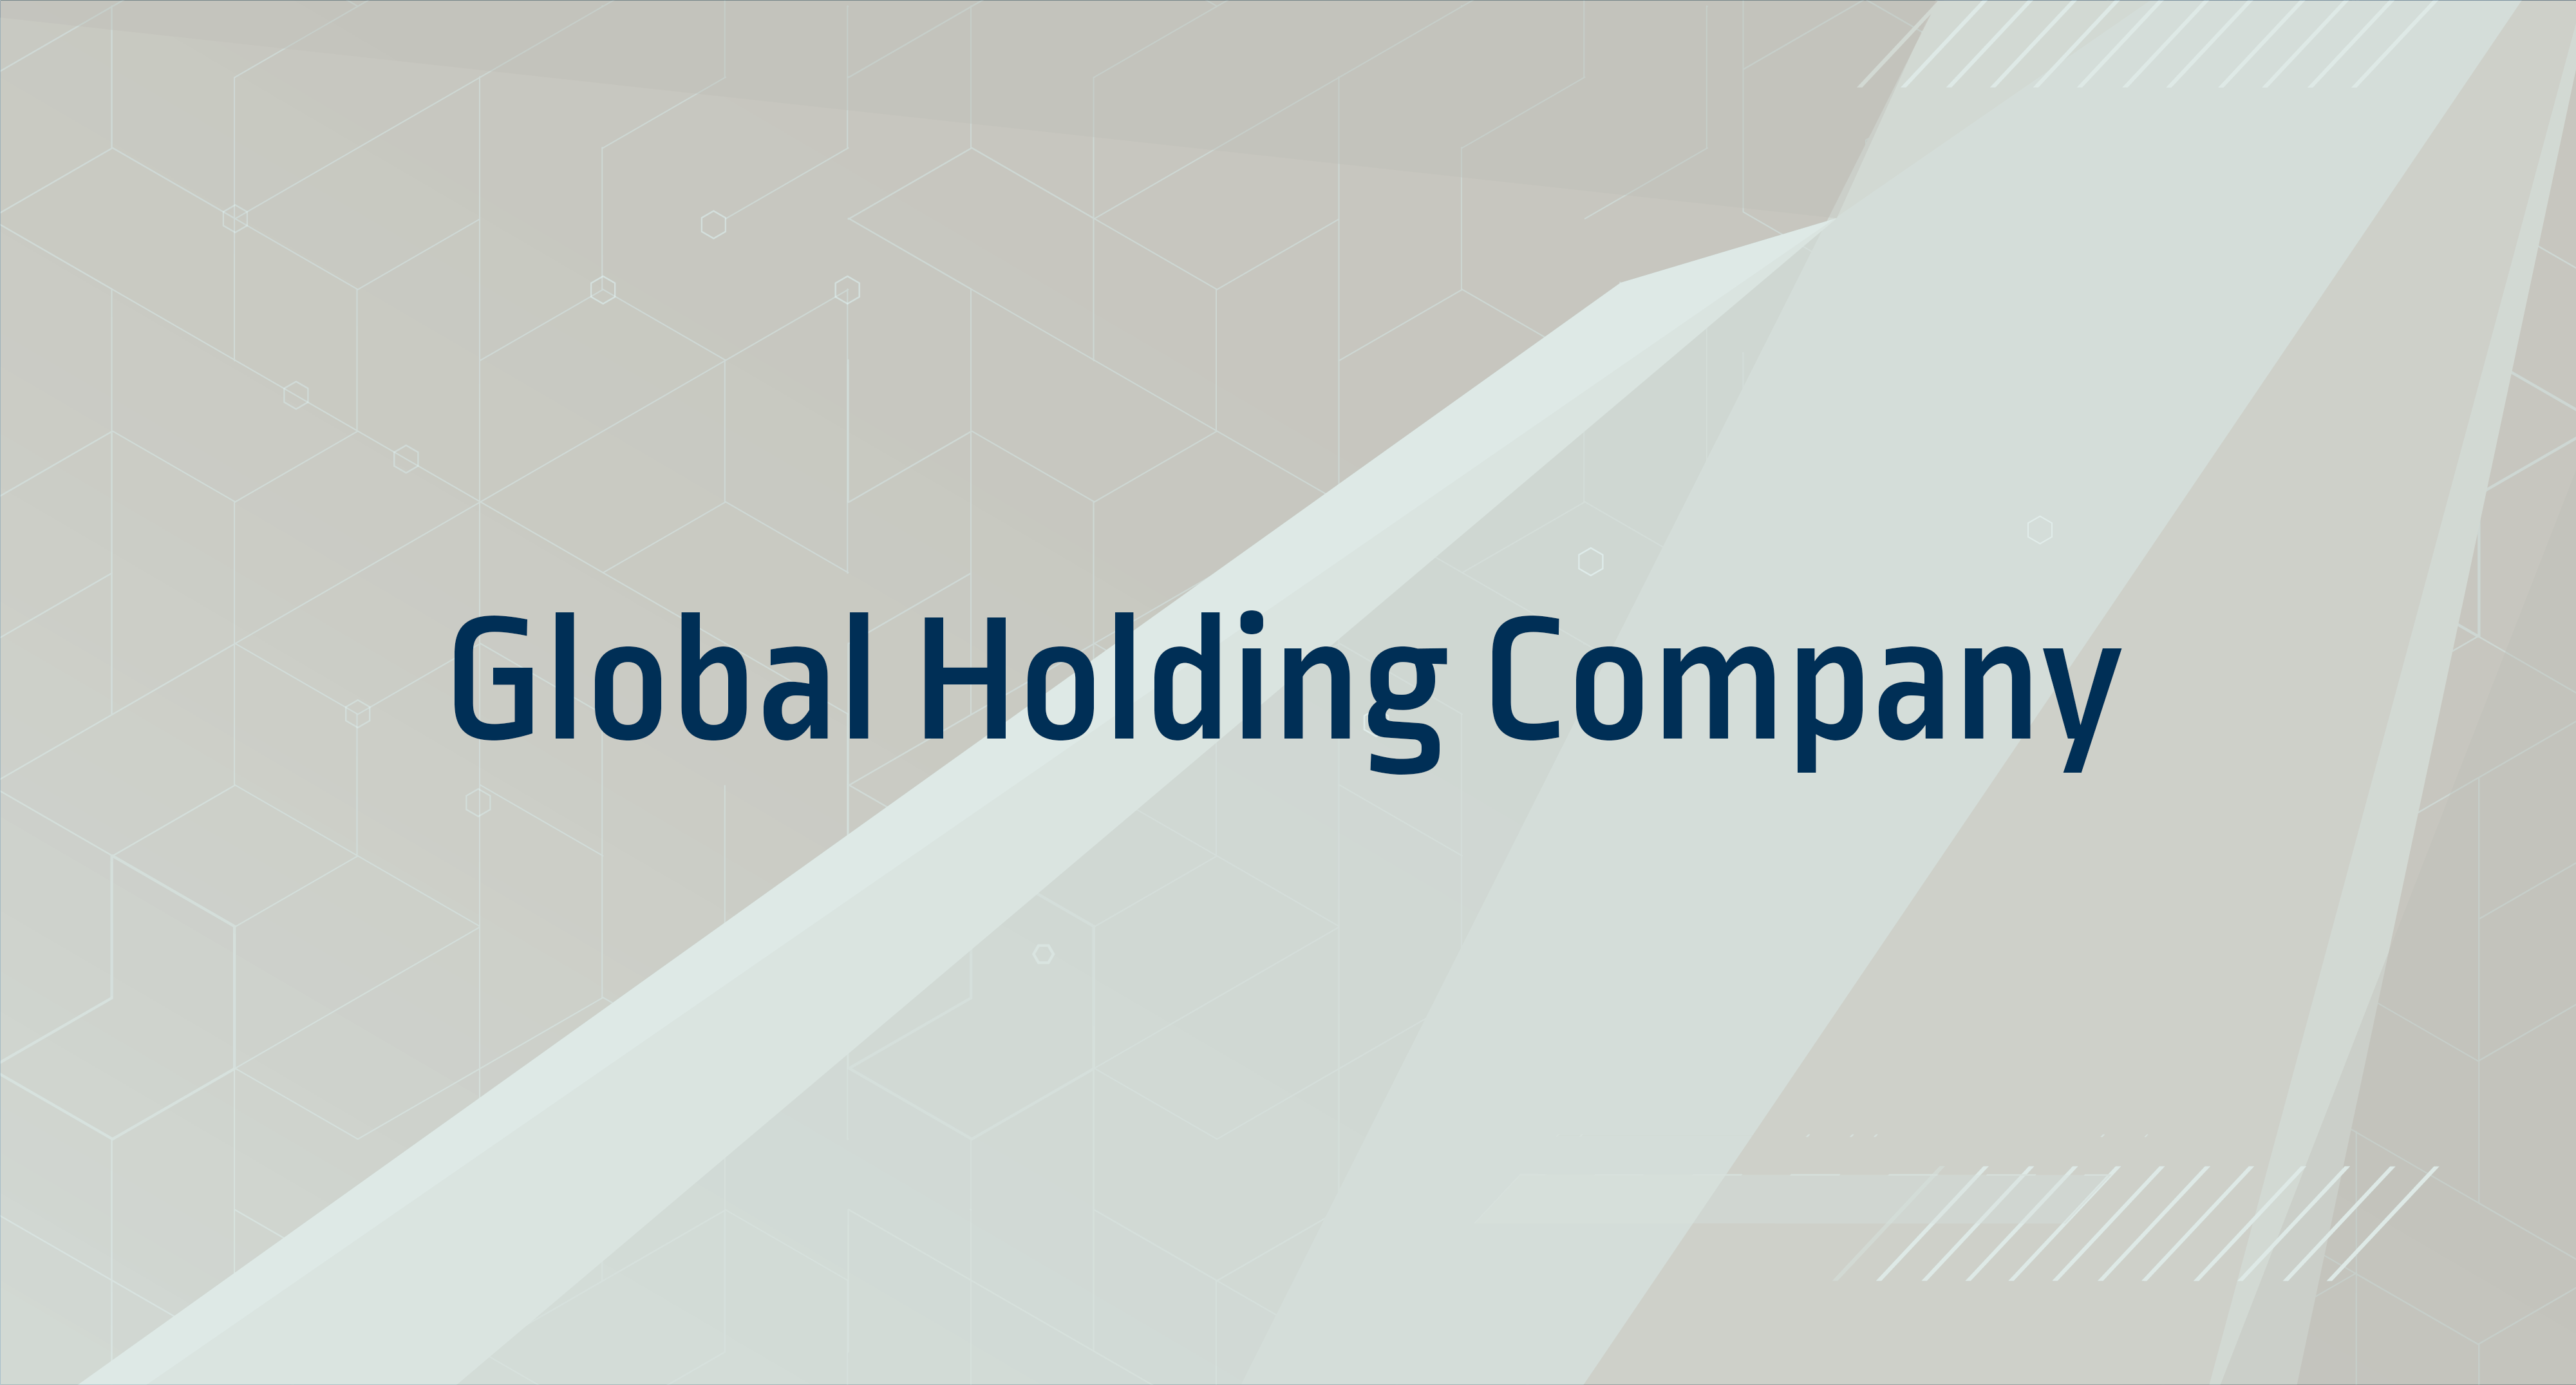 Global Holding Company Relieved When CyberArk Responded to its Worldwide Business Outage Due to a Ransomware Attack.